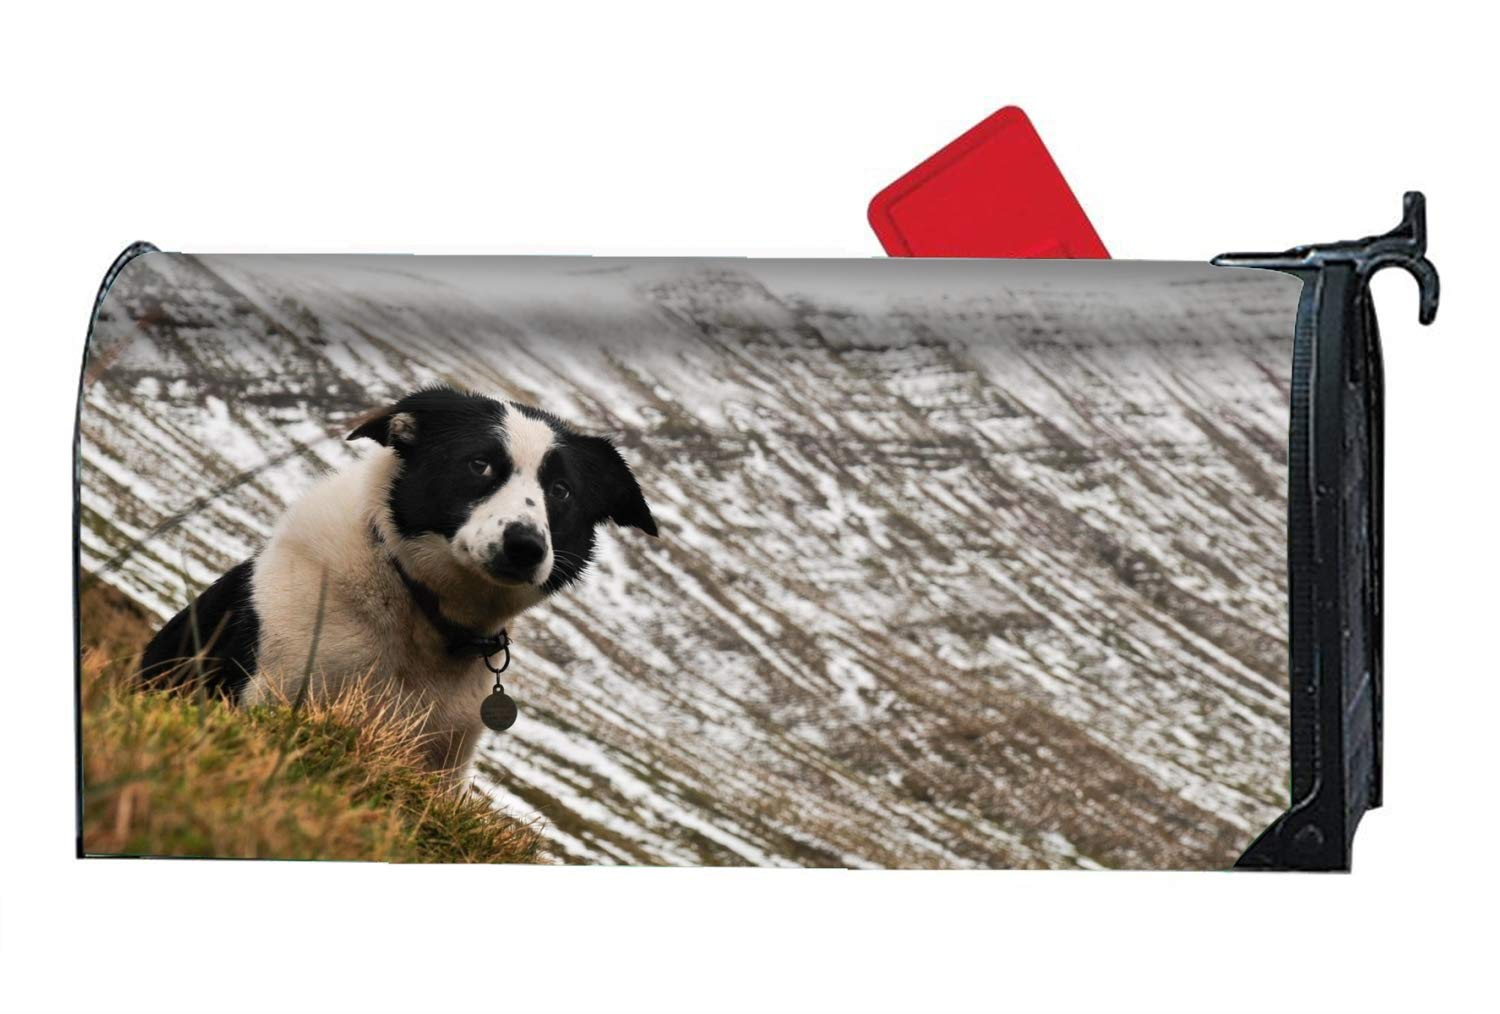 FANMIL Home Animal Border Collie Dogs Four Seasons Magnetic Mailbox Cover by FANMIL (Image #1)